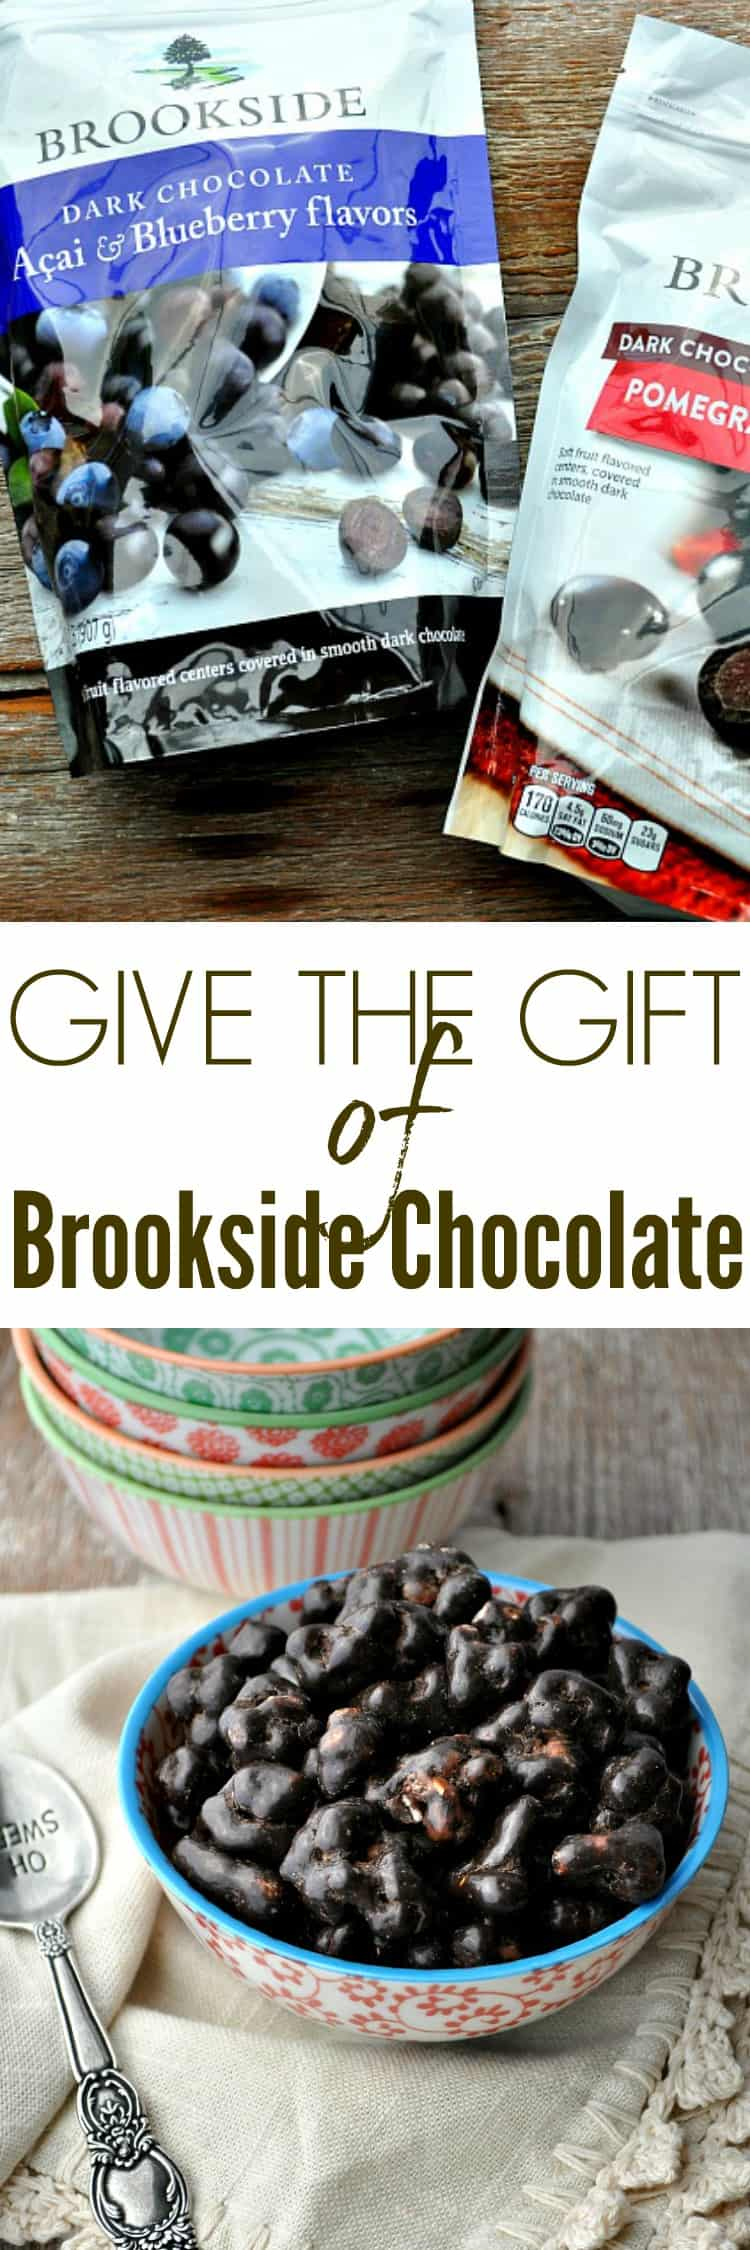 Give the Gift of Chocolate - The Seasoned Mom